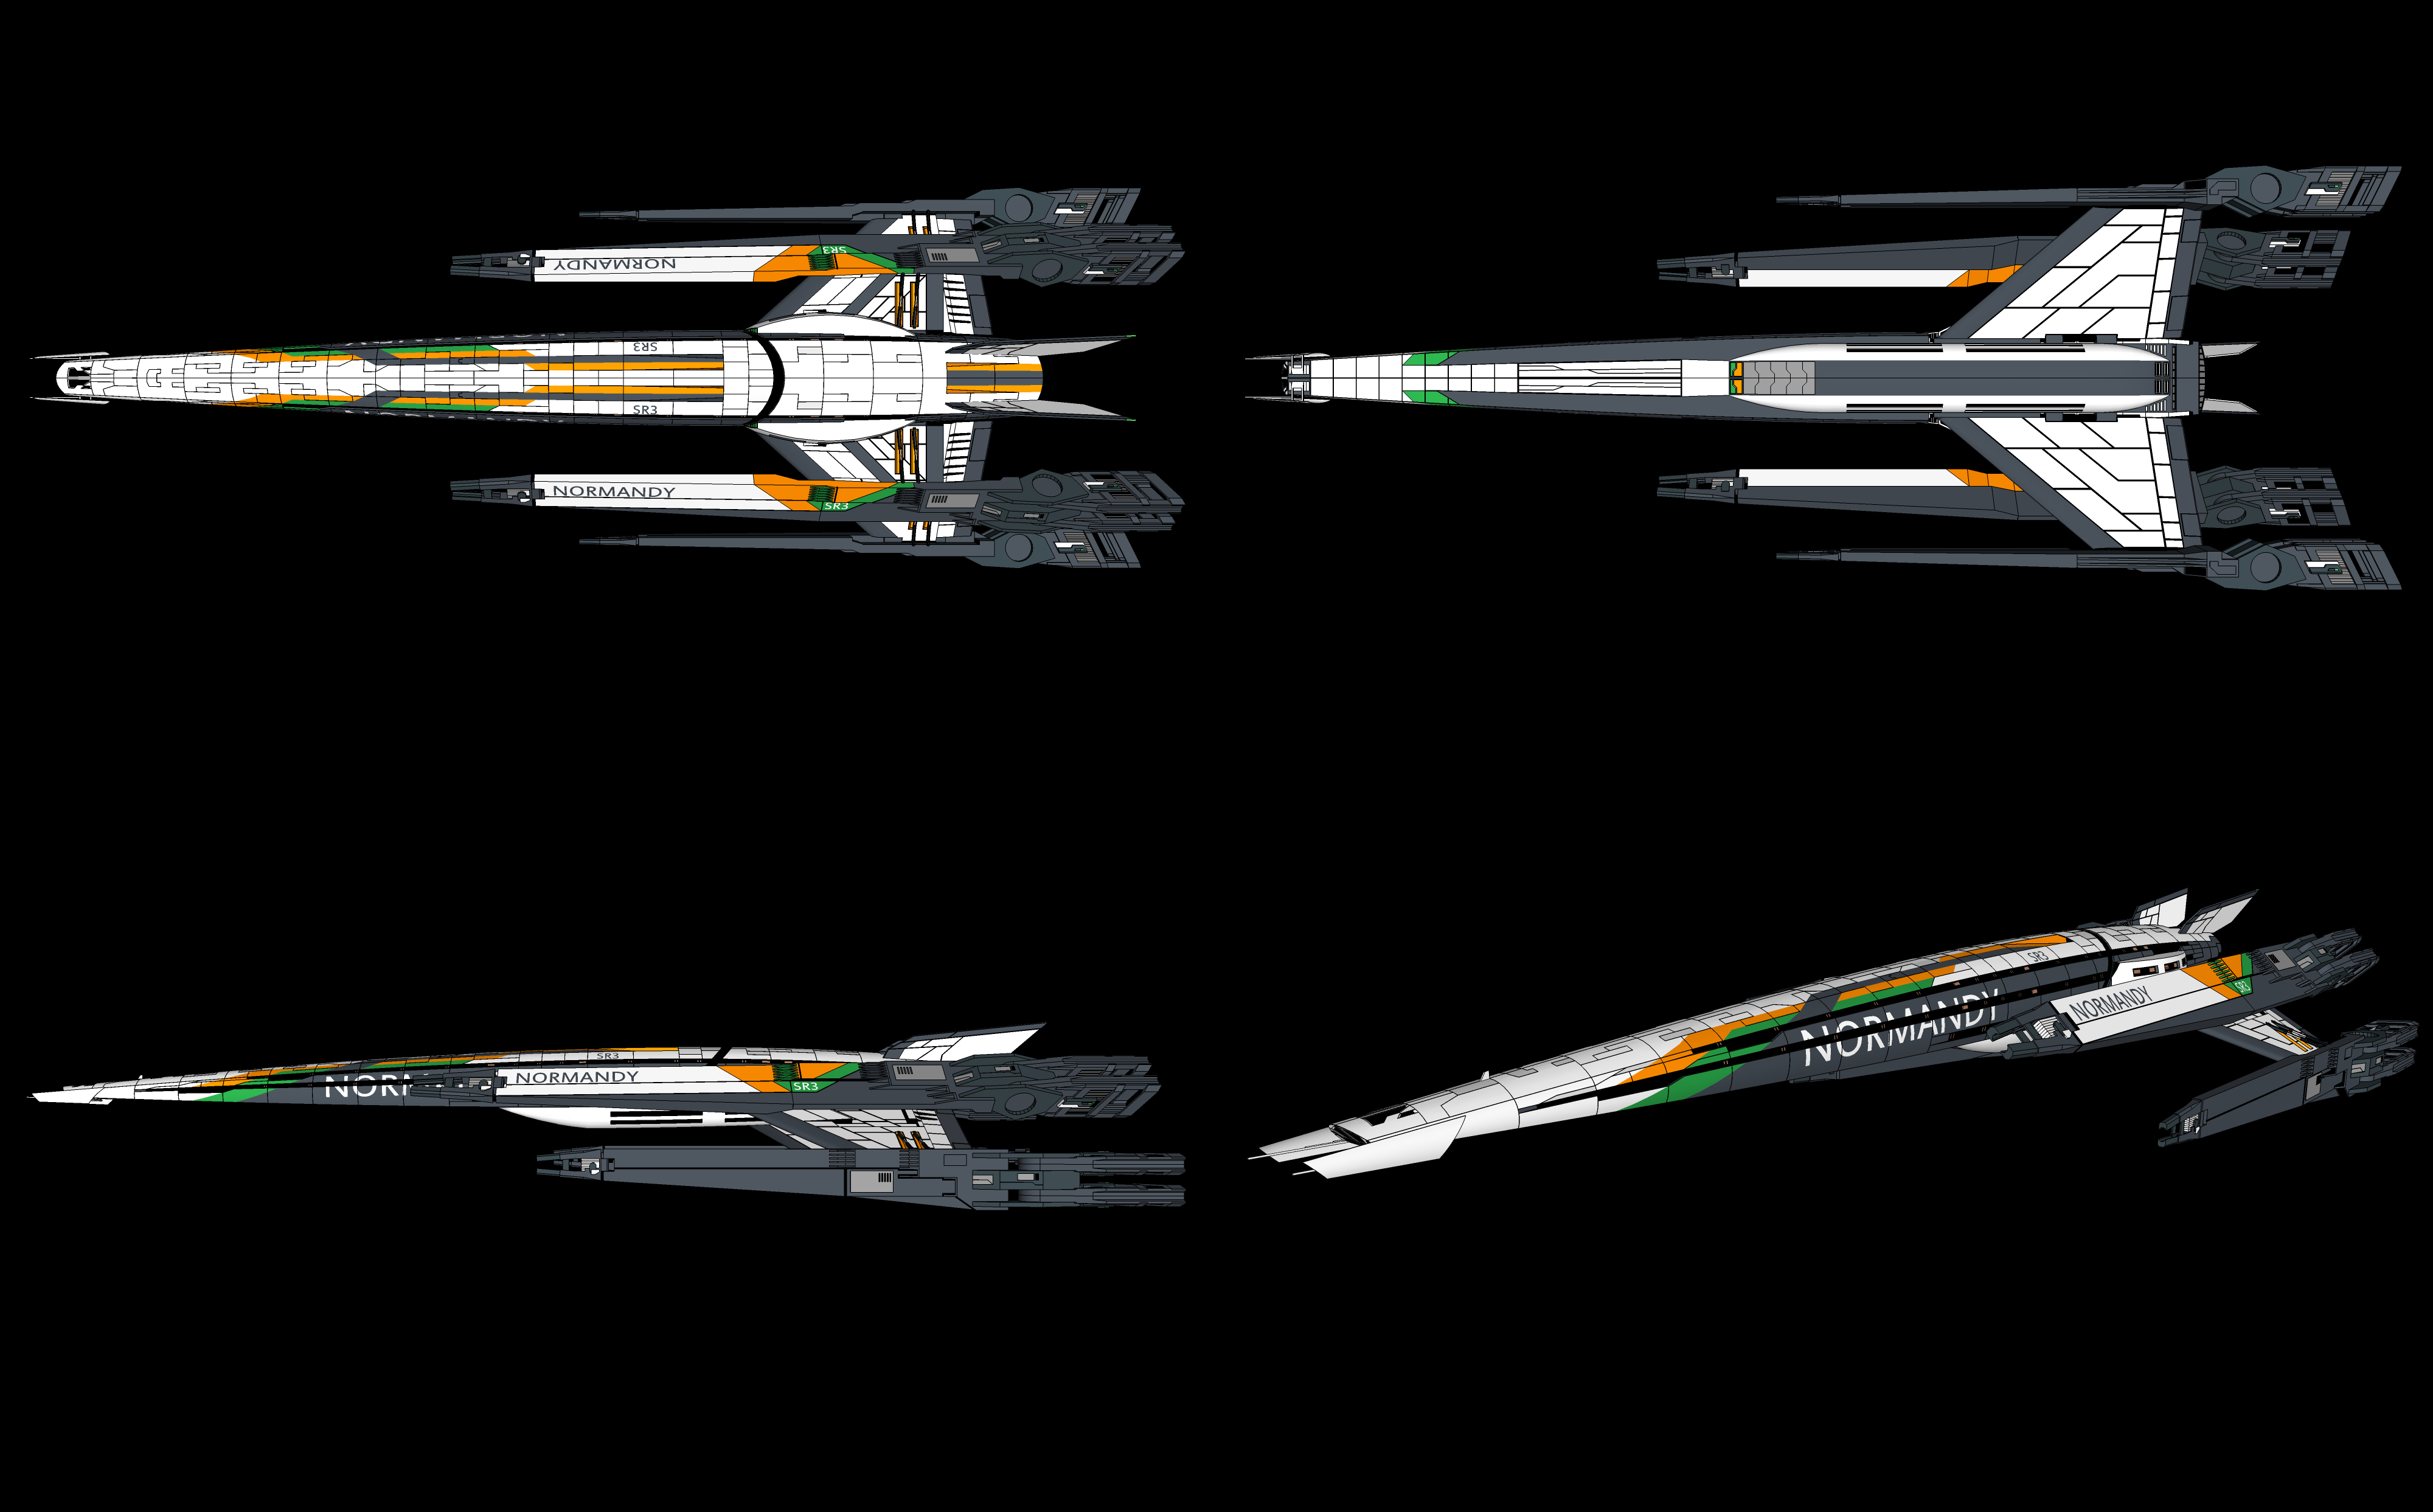 Concept mass effect normandy HD Wallpaper